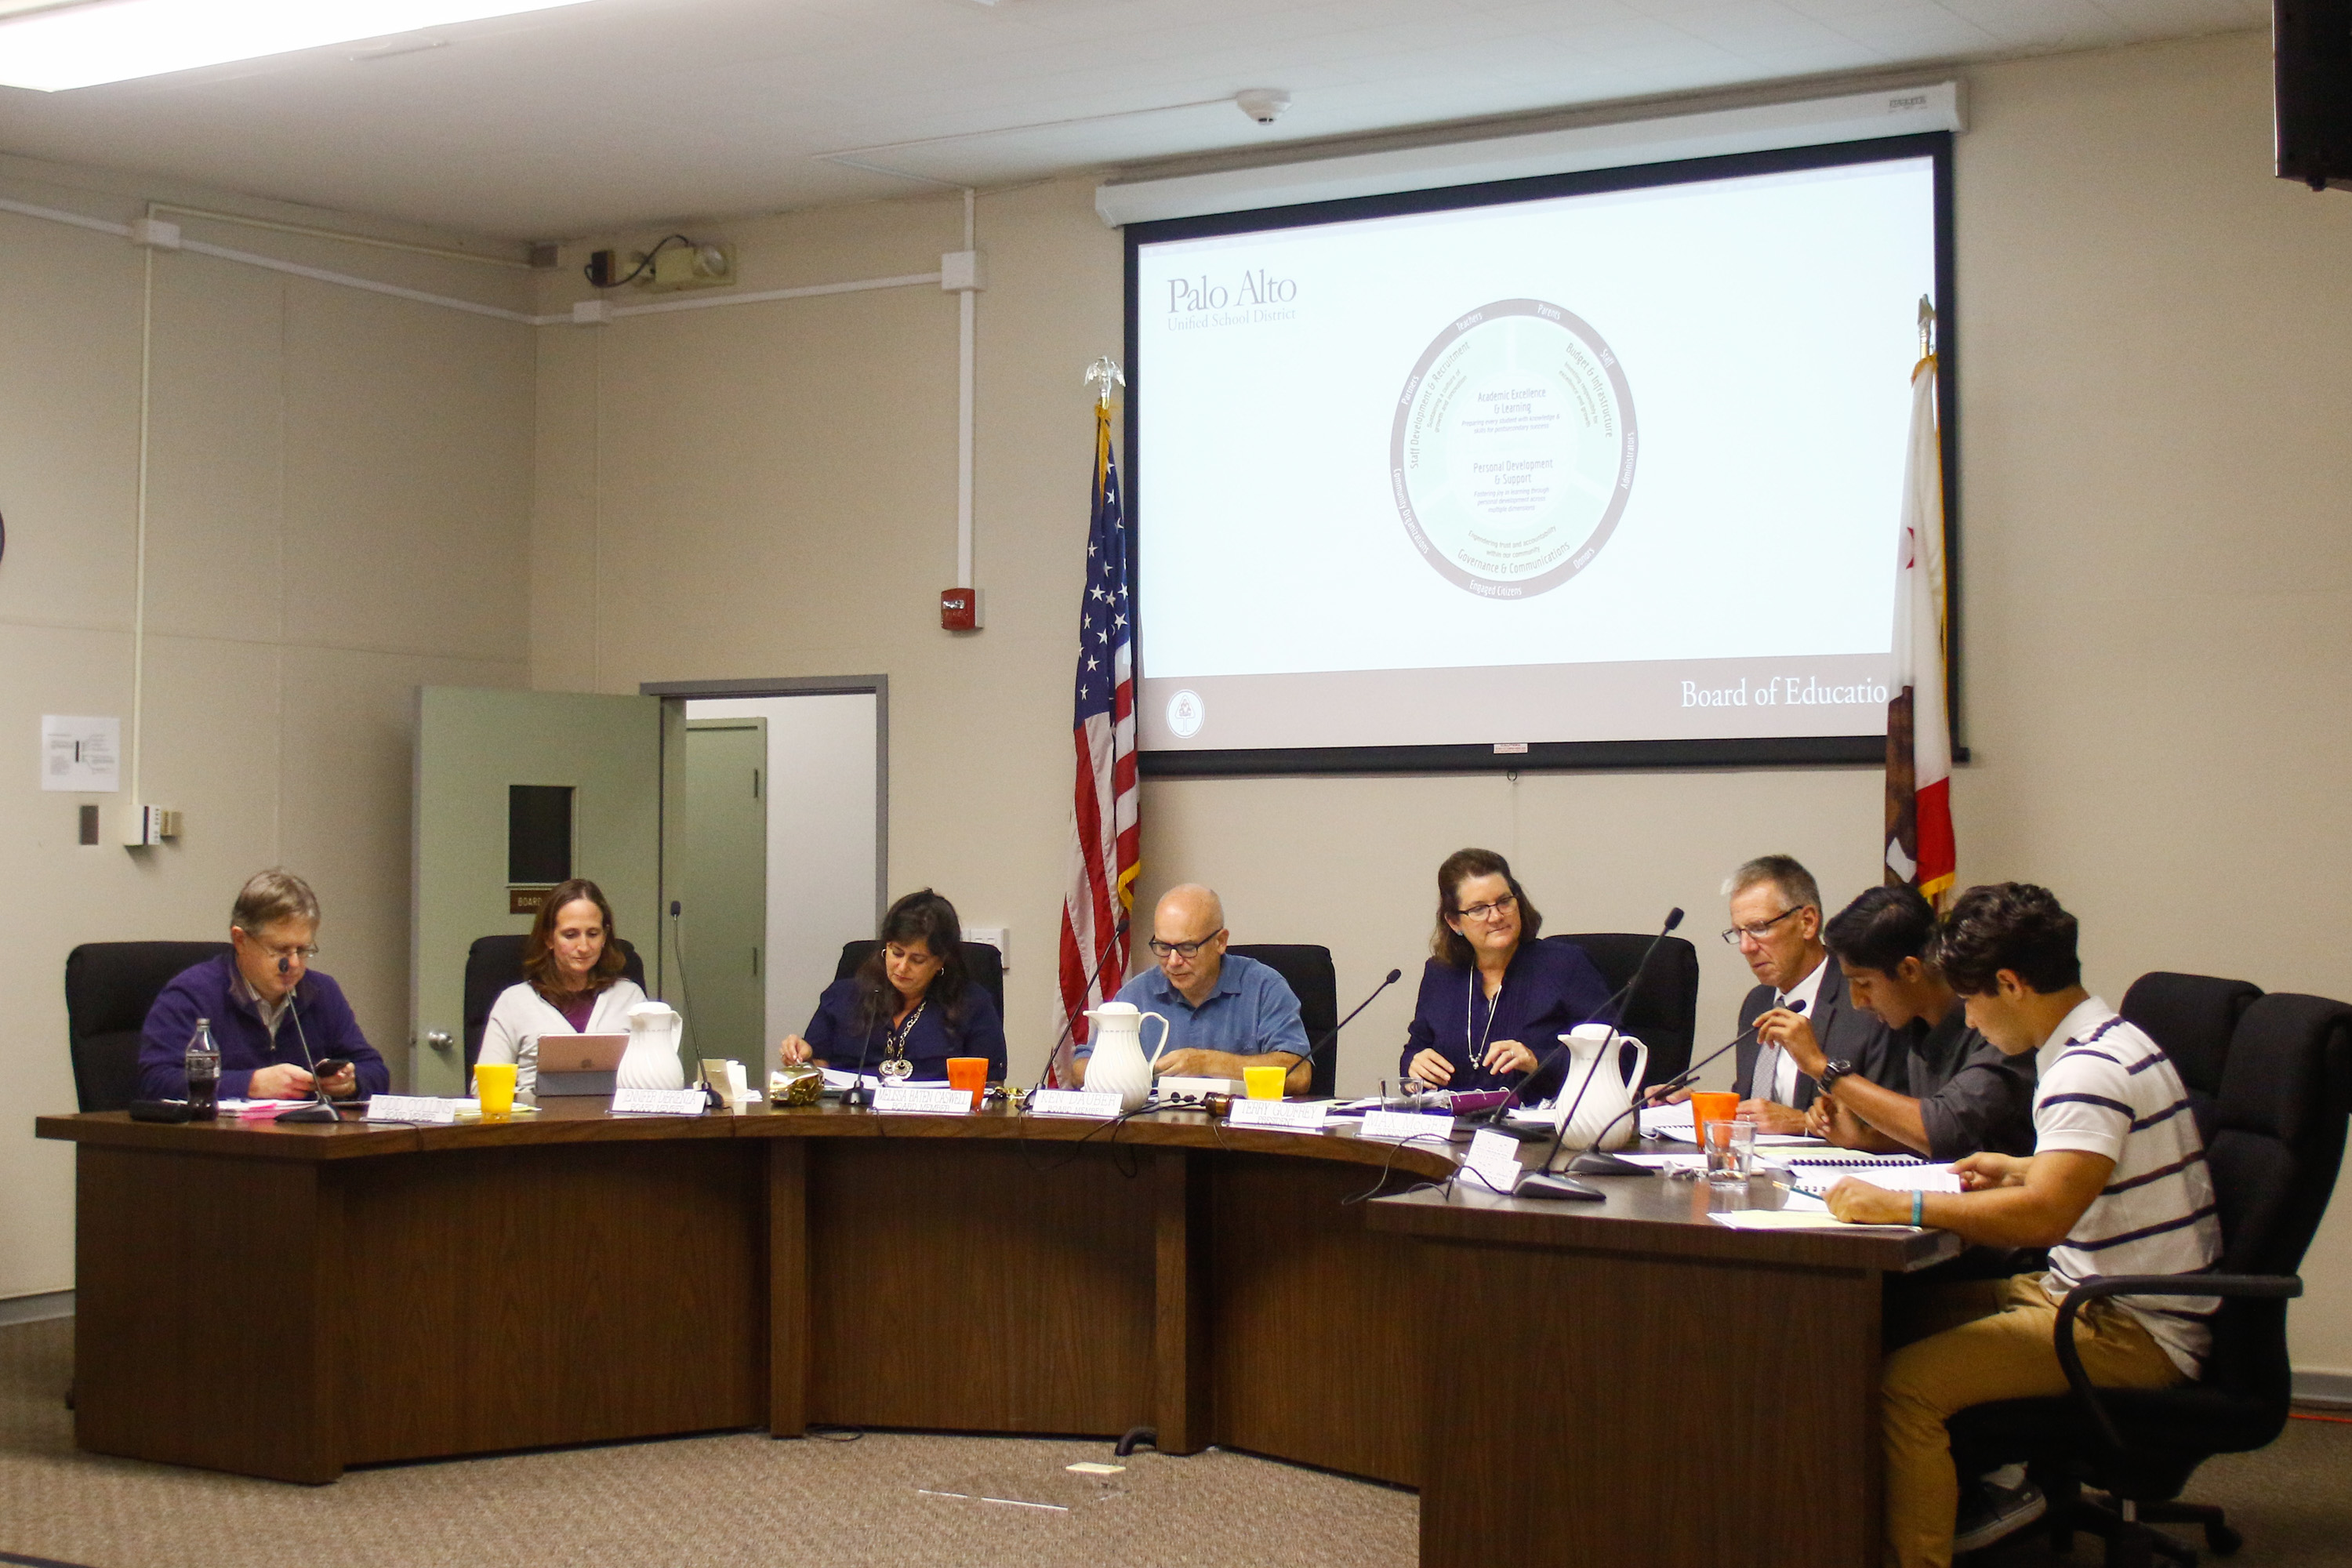 The Palo Alto School Board, from left, board members Todd Collins, Jennifer Dibrienza, Melissa Baten Caswell, Ken Dauber, Board President Terry Godfrey, Superintendent Max McGee, and student representatives Advait Arun and Richy Islas, talk during a board meeting on Sept.13, 2017. Photo by Veronica Weber.